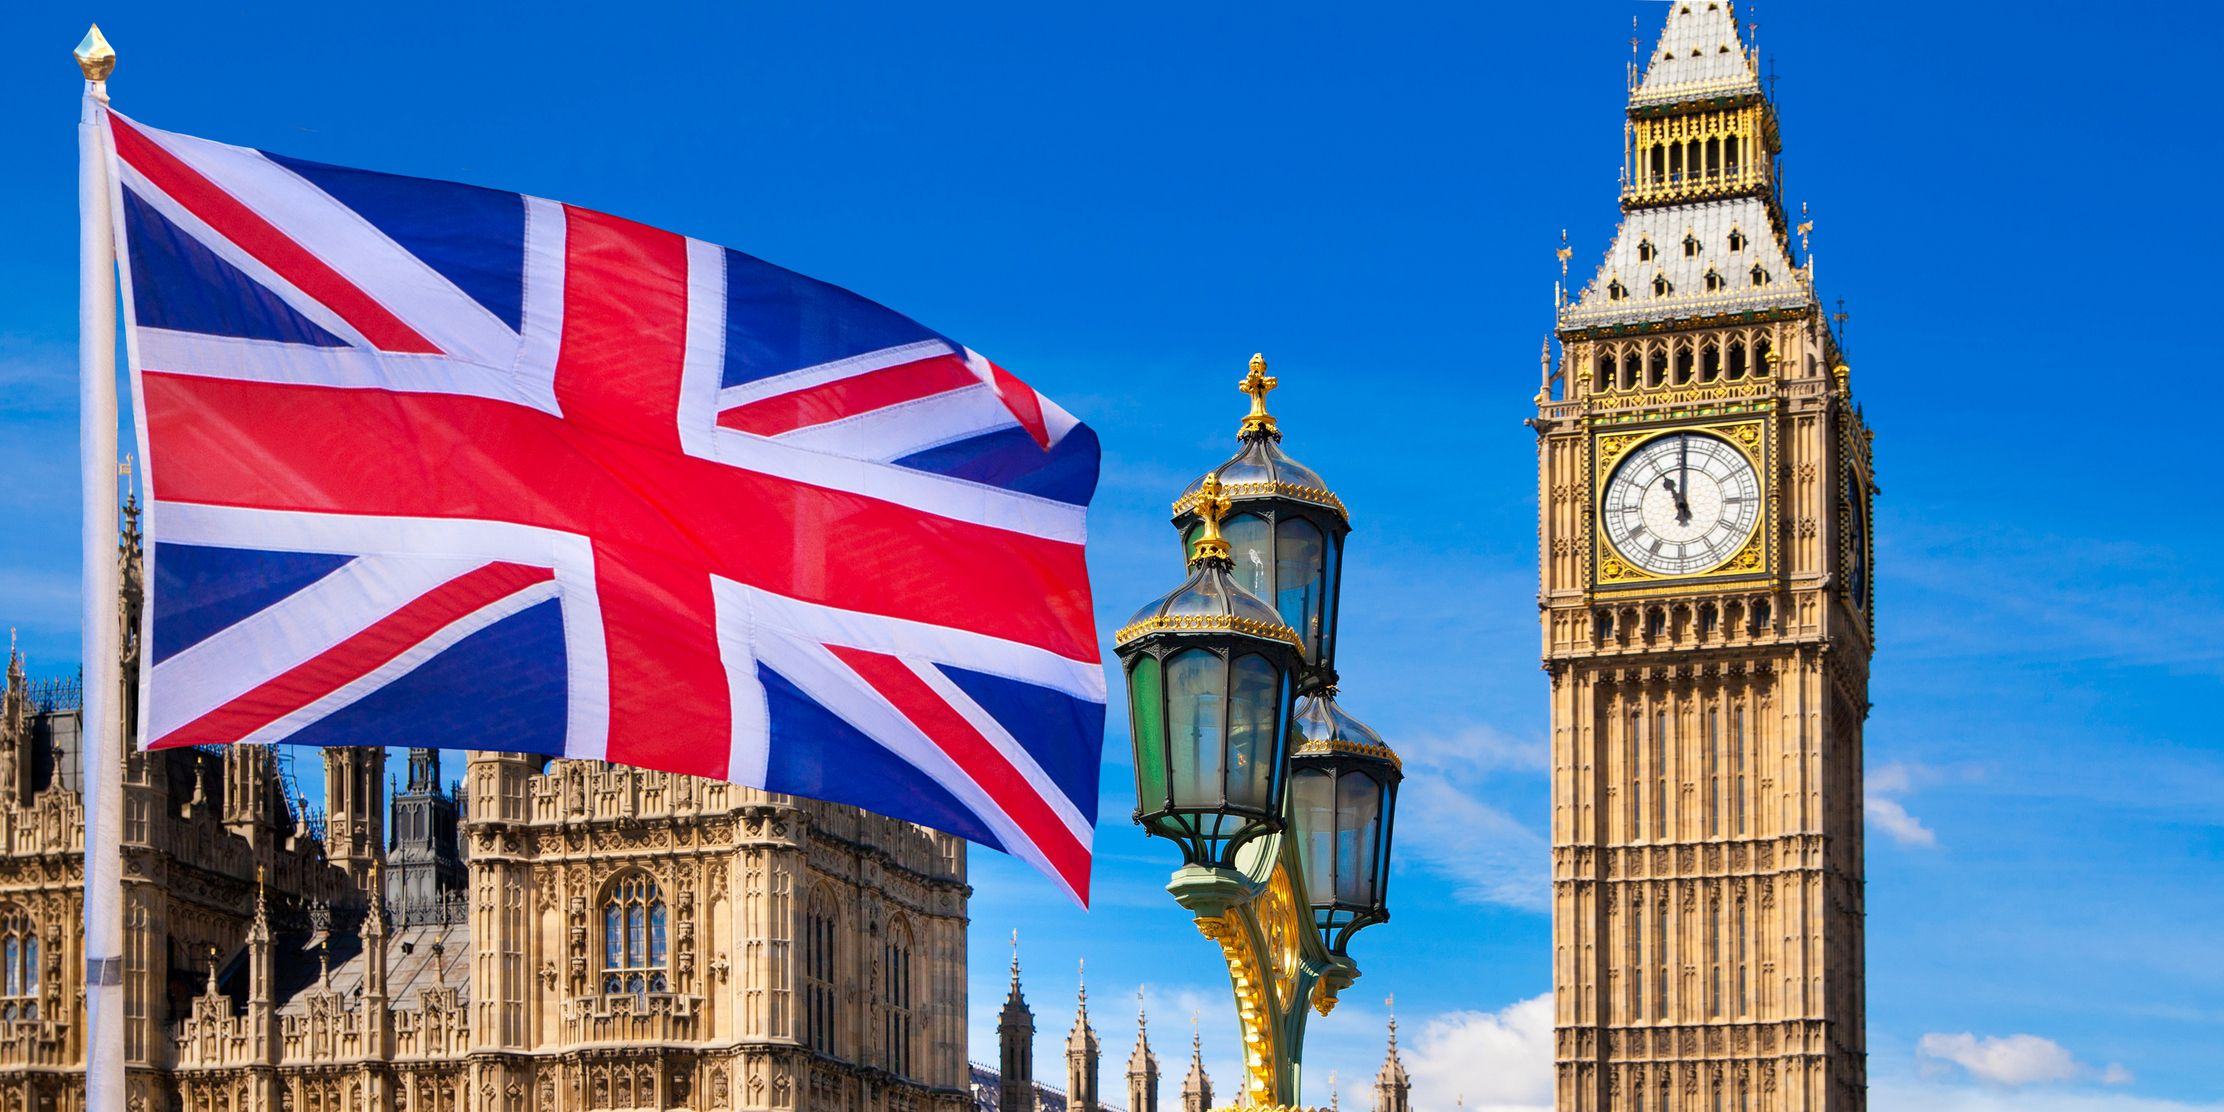 British flag, Big Ben and Houses of Parliament. London